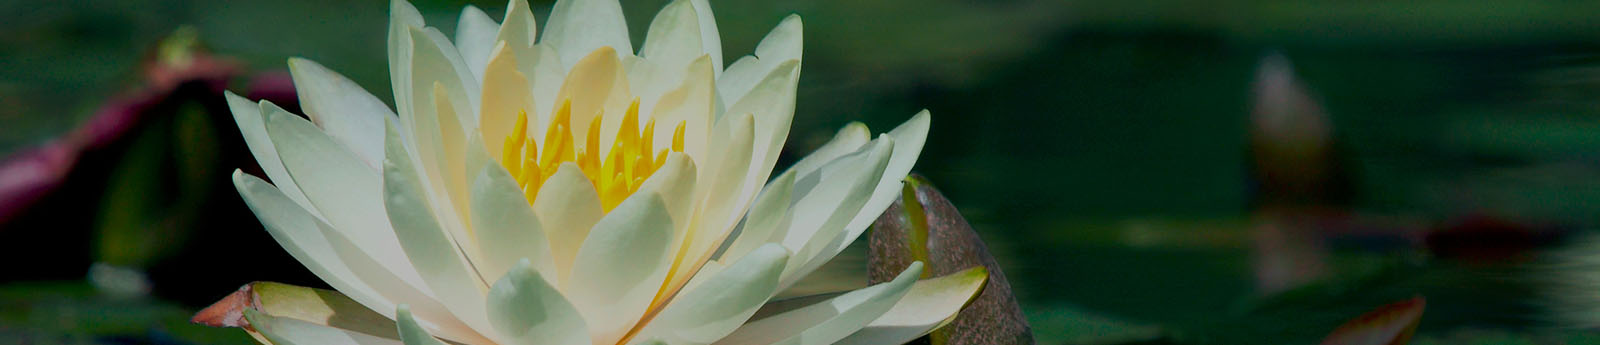 Resources | Woodhead Funeral Homes, Memorials & Cremation Service